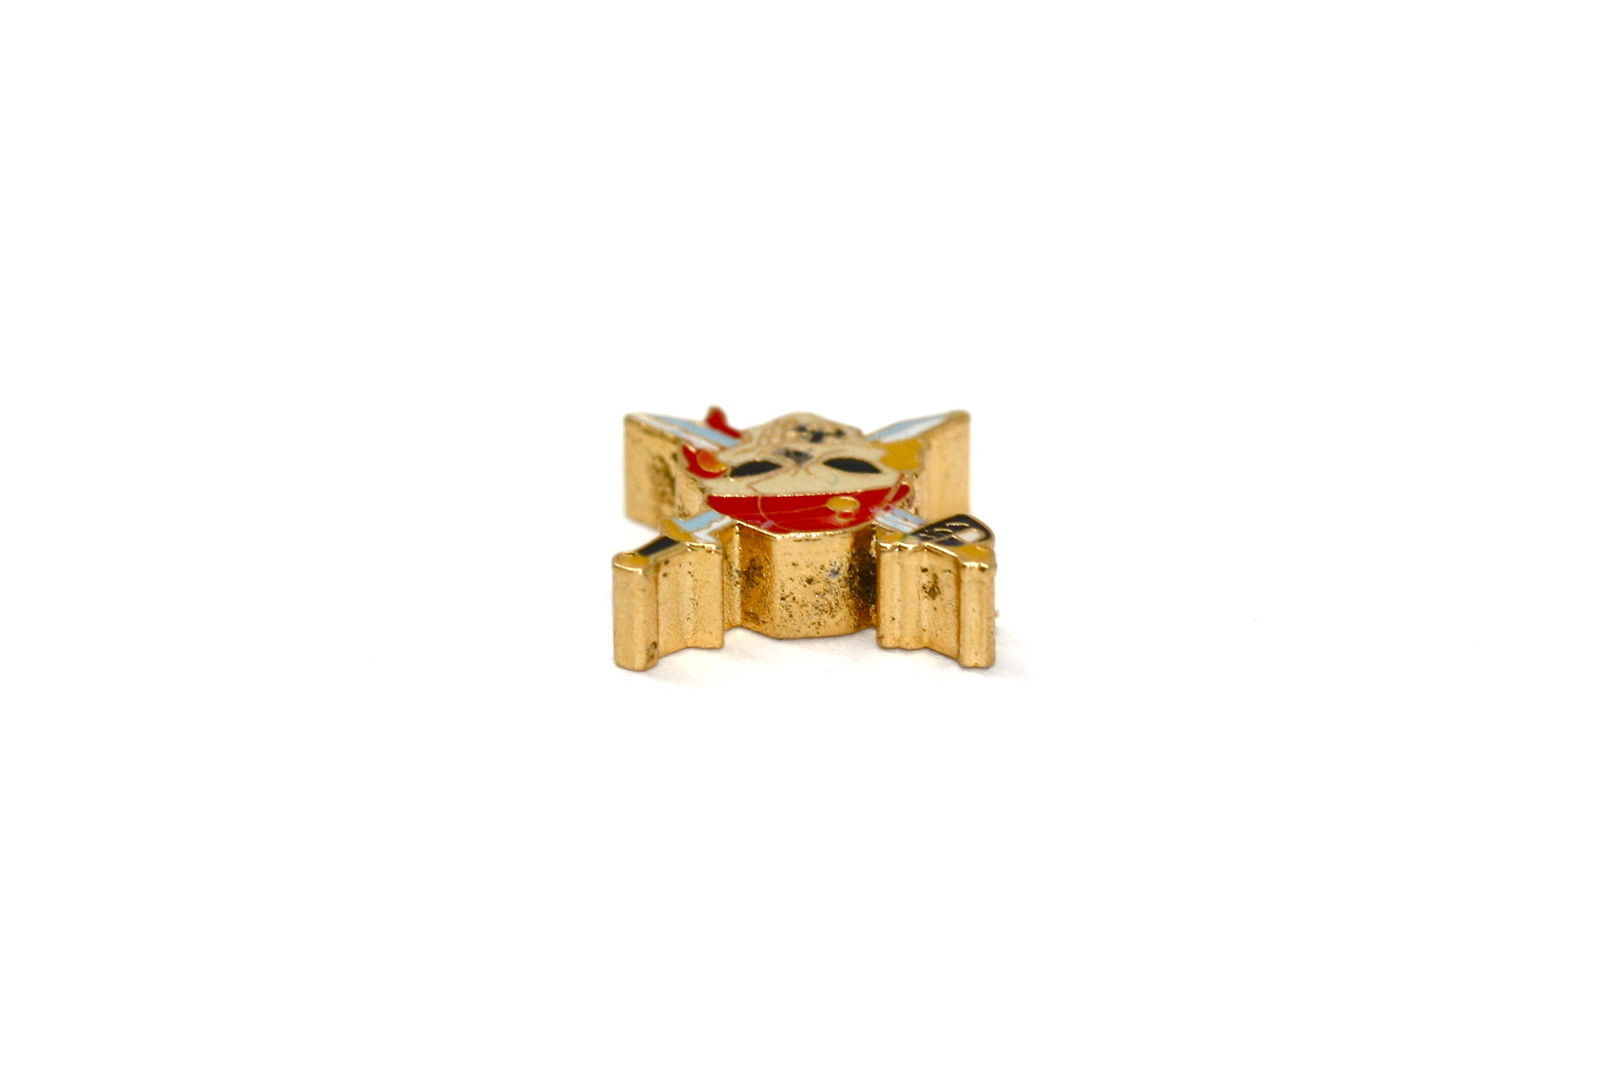 BRACCIALE DISNEY PIRATE GOLD STAINLESS STEEL GOLD PLATED CHARM